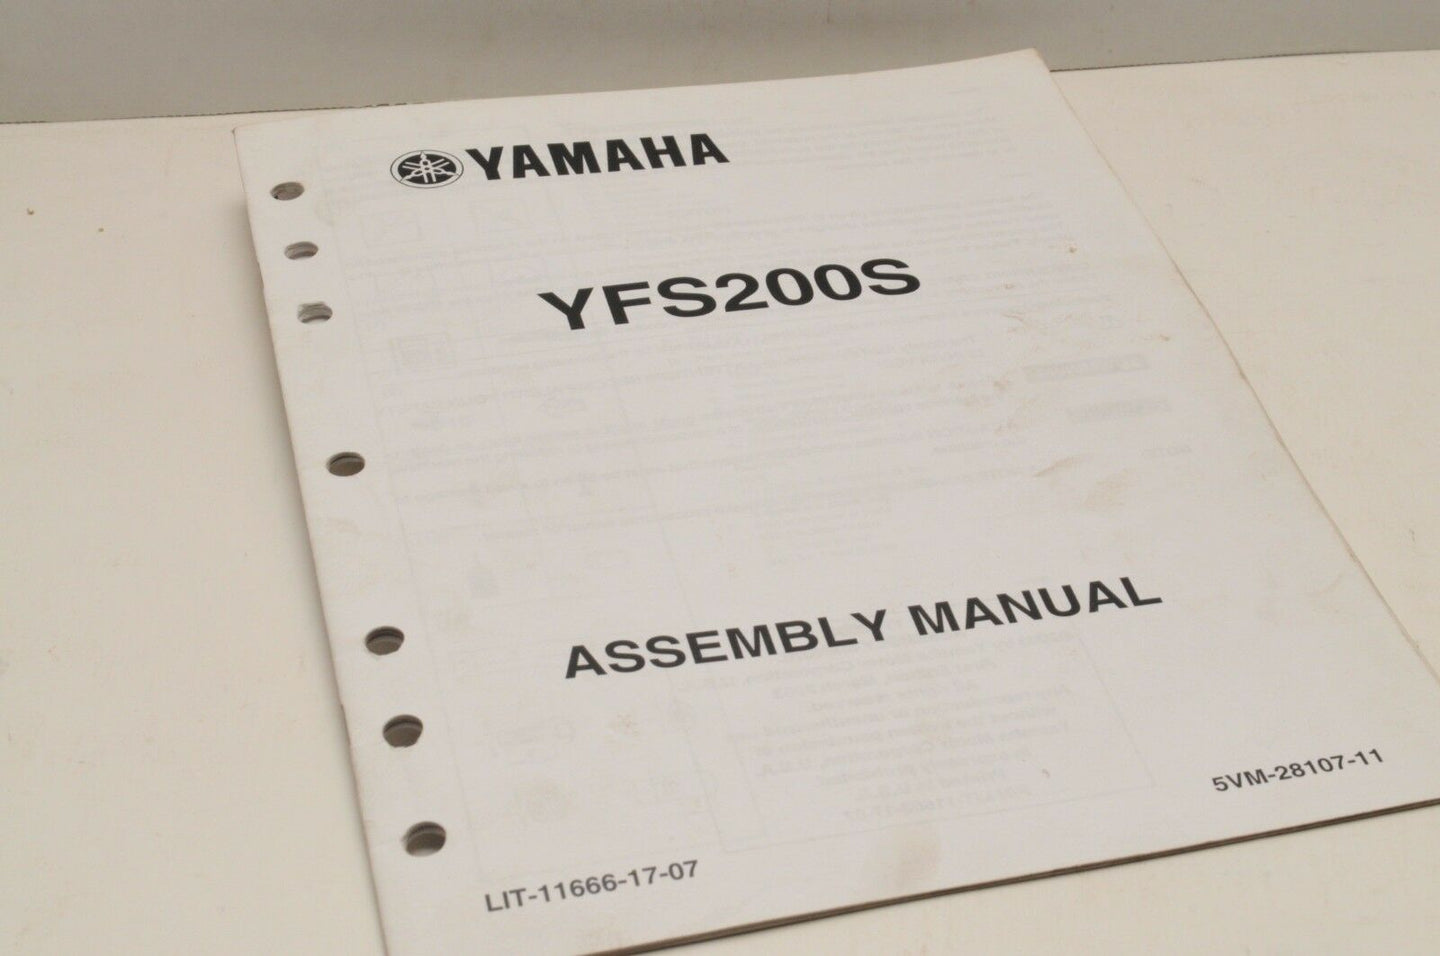 Genuine Yamaha ASSEMBLY SETUP MANUAL YFS200S BLASTER 200 2004 LIT-11666-17-07